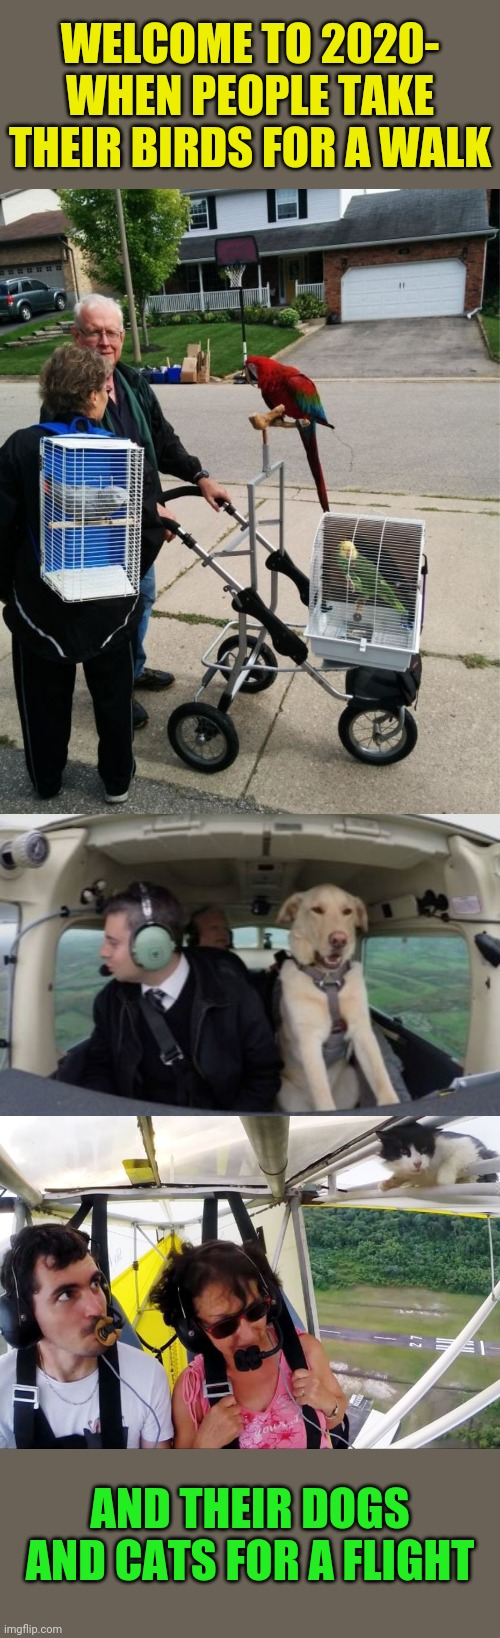 Strange days indeed... |  WELCOME TO 2020- WHEN PEOPLE TAKE THEIR BIRDS FOR A WALK; AND THEIR DOGS AND CATS FOR A FLIGHT | image tagged in 2020,weird stuff,walking,birds,flying,dogs an cats | made w/ Imgflip meme maker